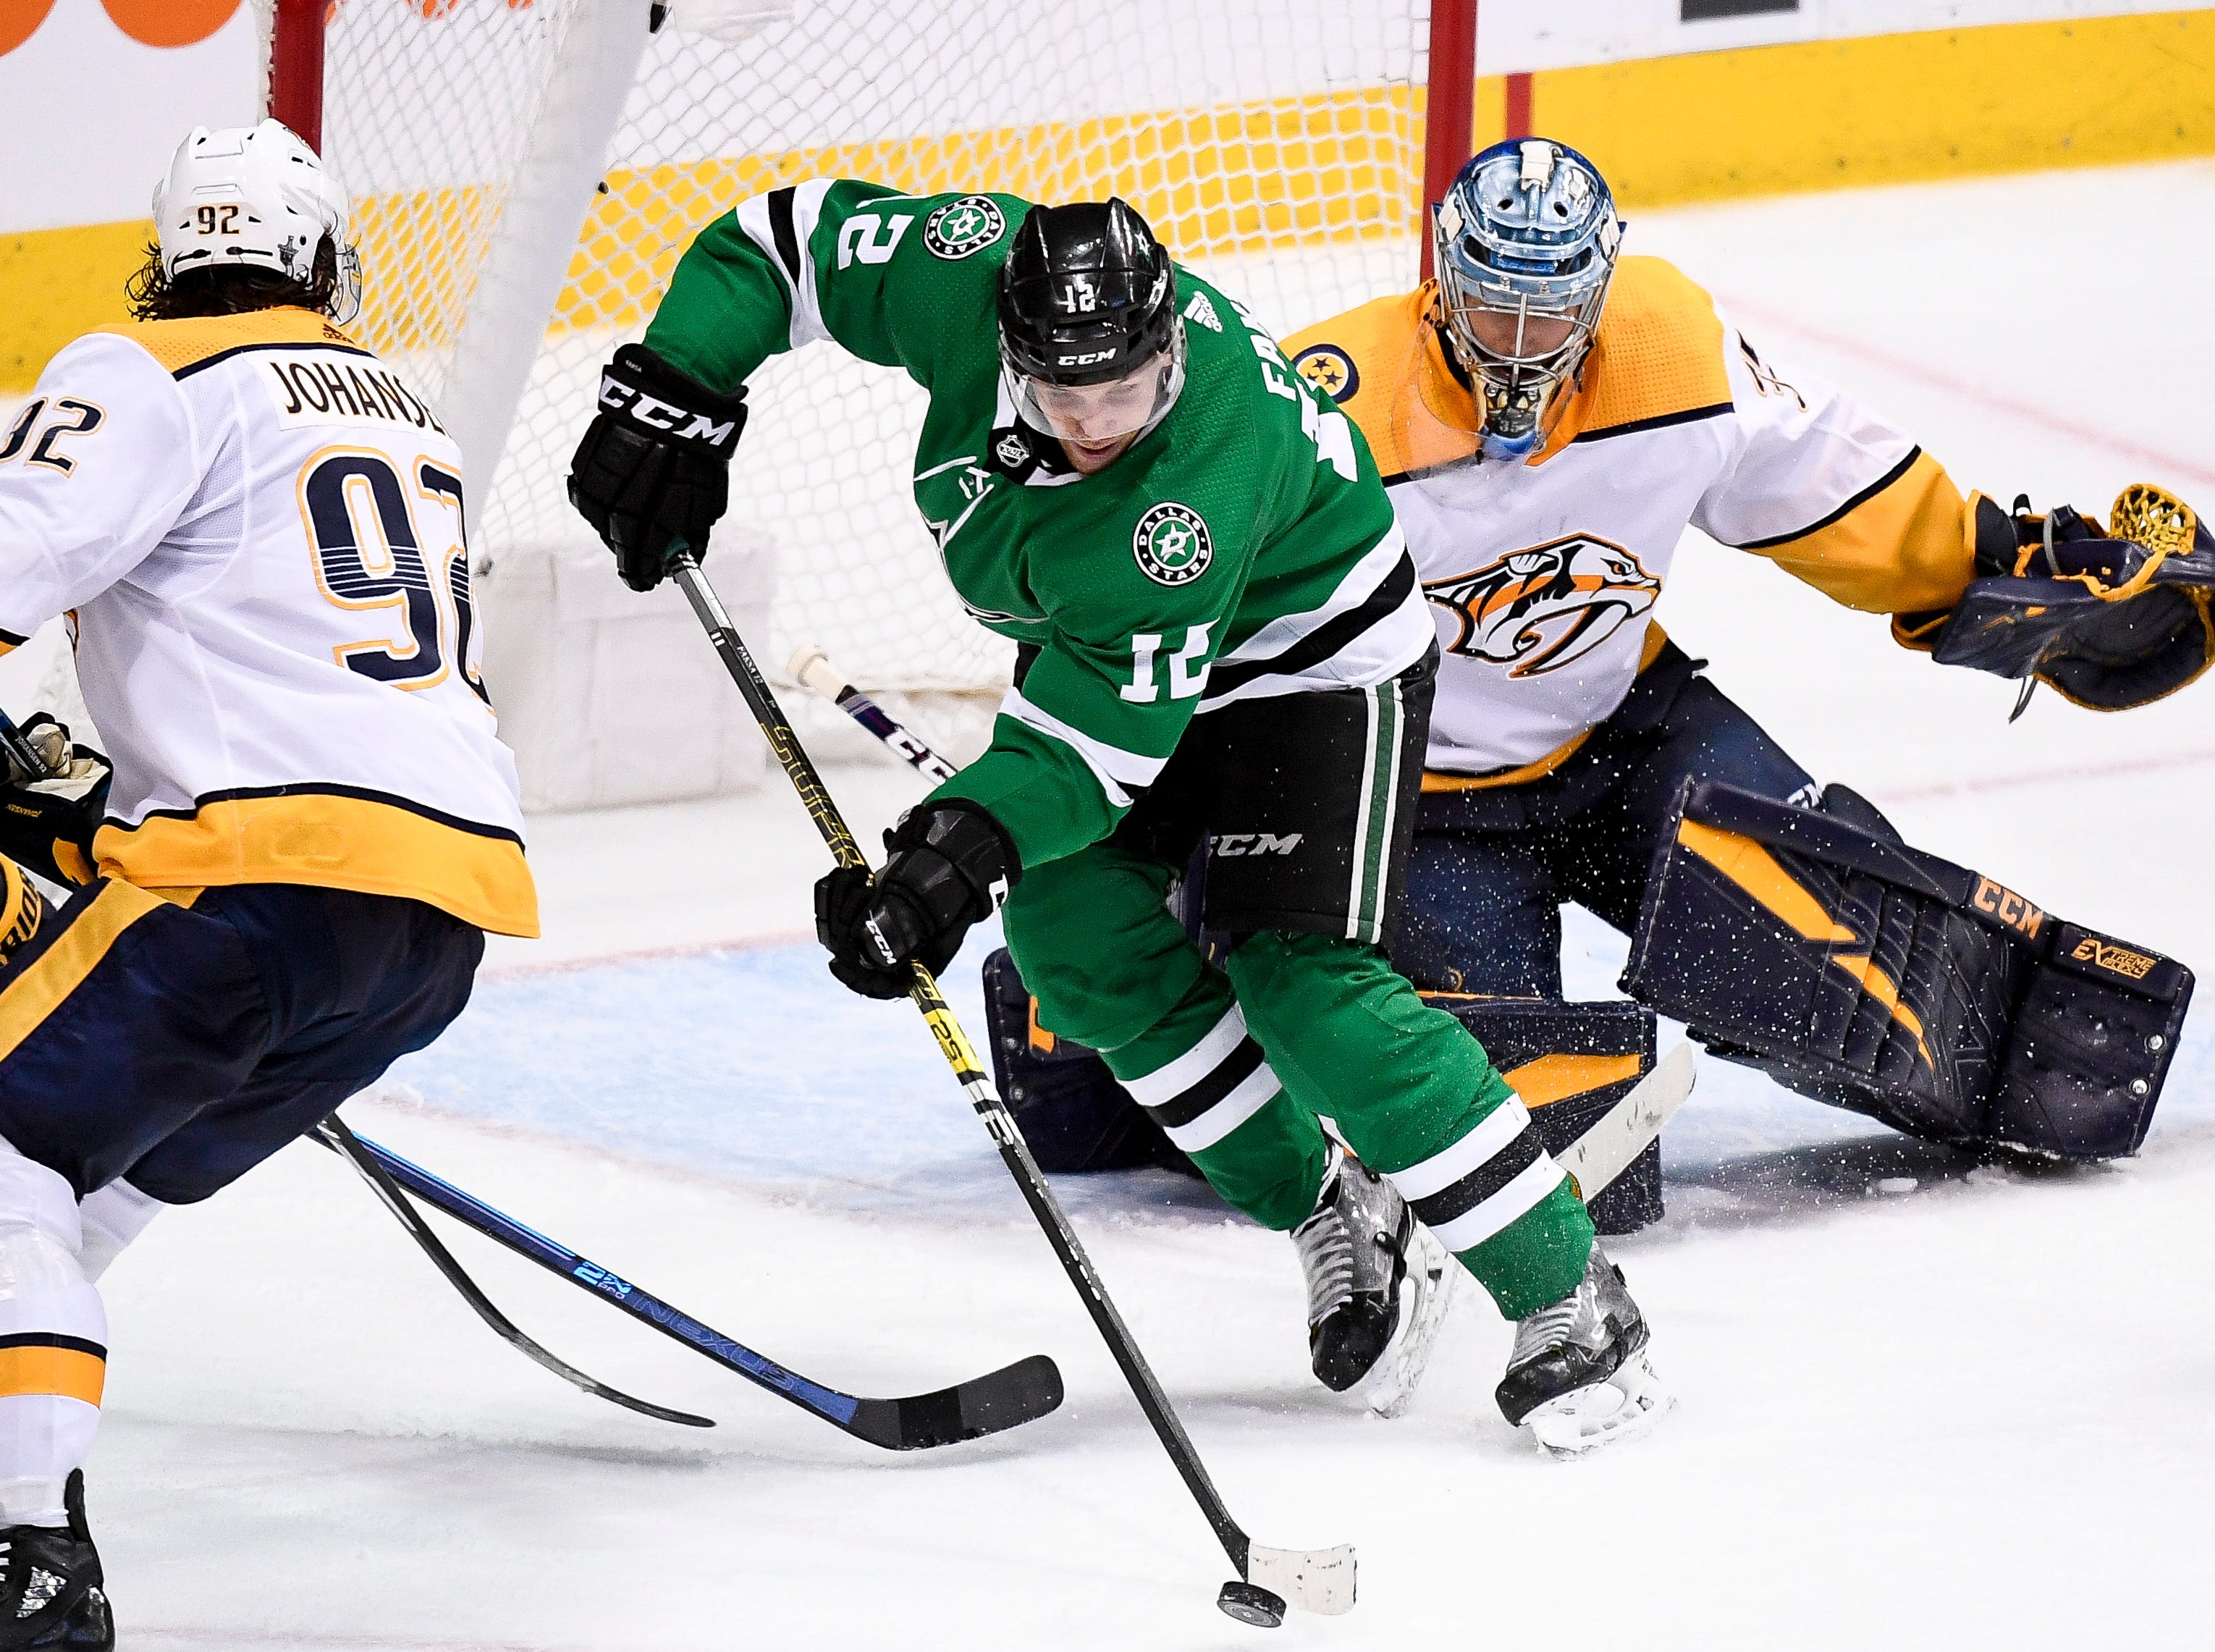 Dallas Stars center Radek Faksa (12) battles Nashville Predators center Ryan Johansen (92) and goaltender Pekka Rinne (35) during the third period of the divisional semifinal game at the American Airlines Center in Dallas, Texas., Monday, April 15, 2019.